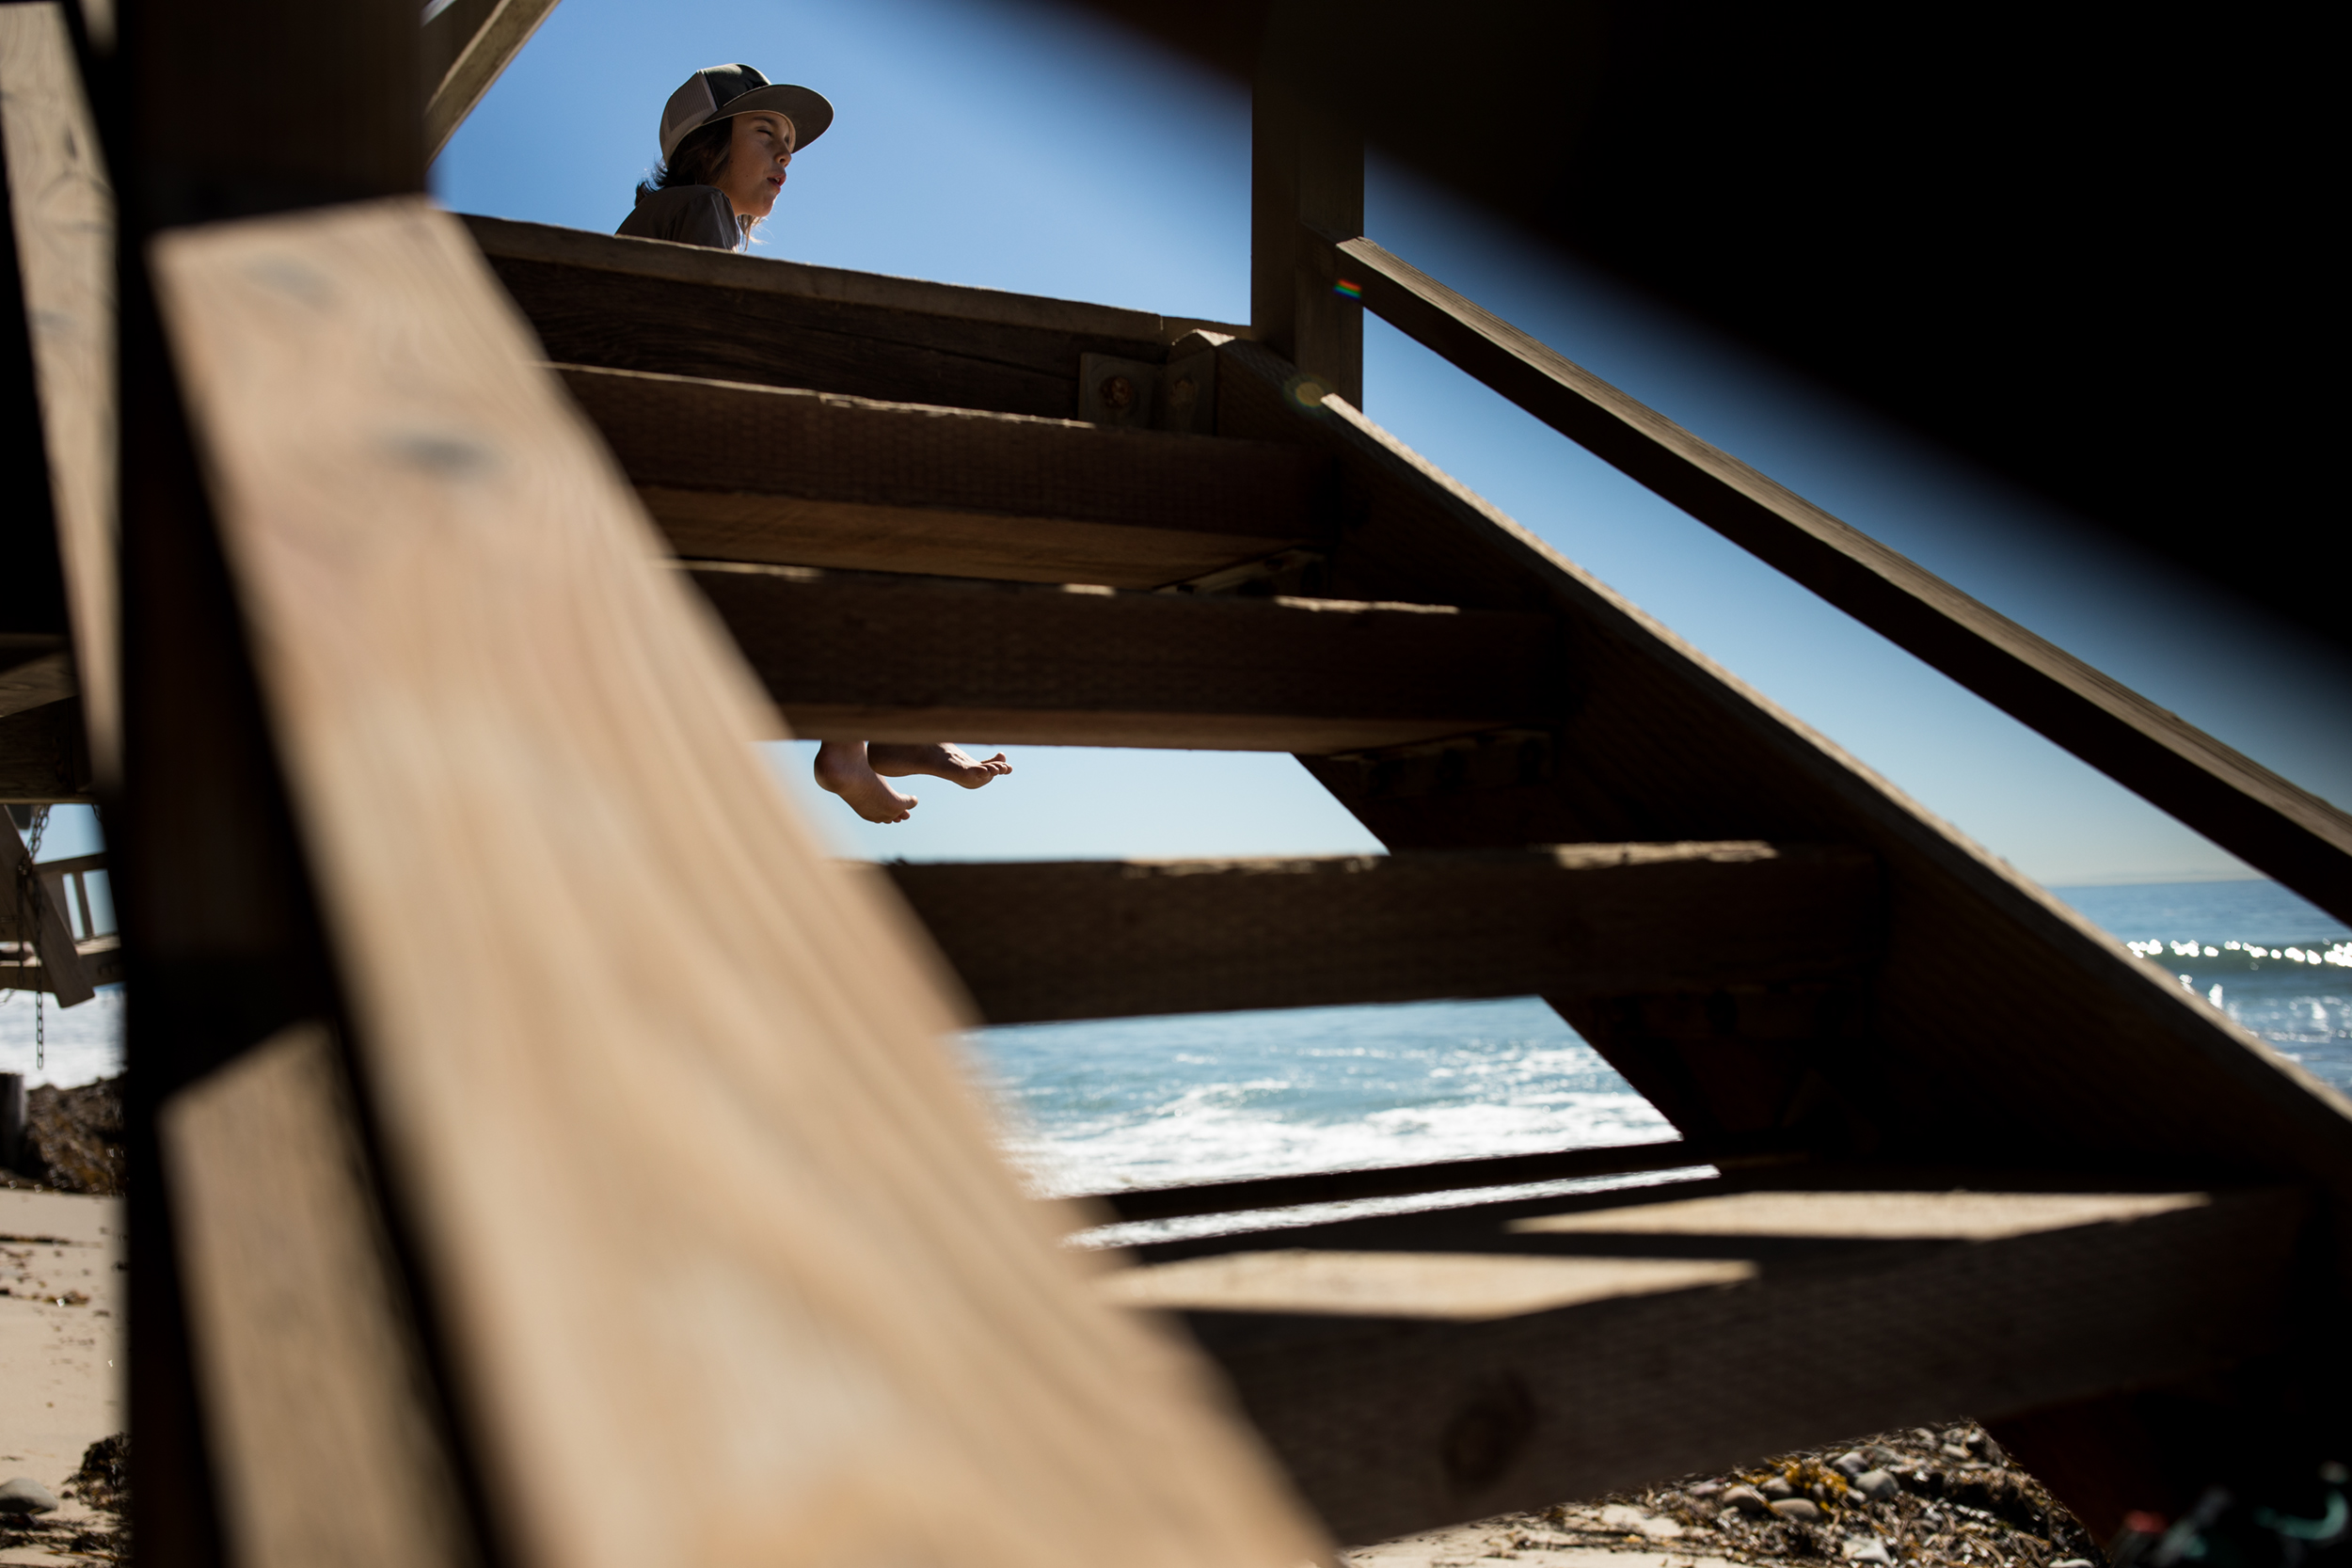 A boy sits on the deck dangling his feet over the beach below